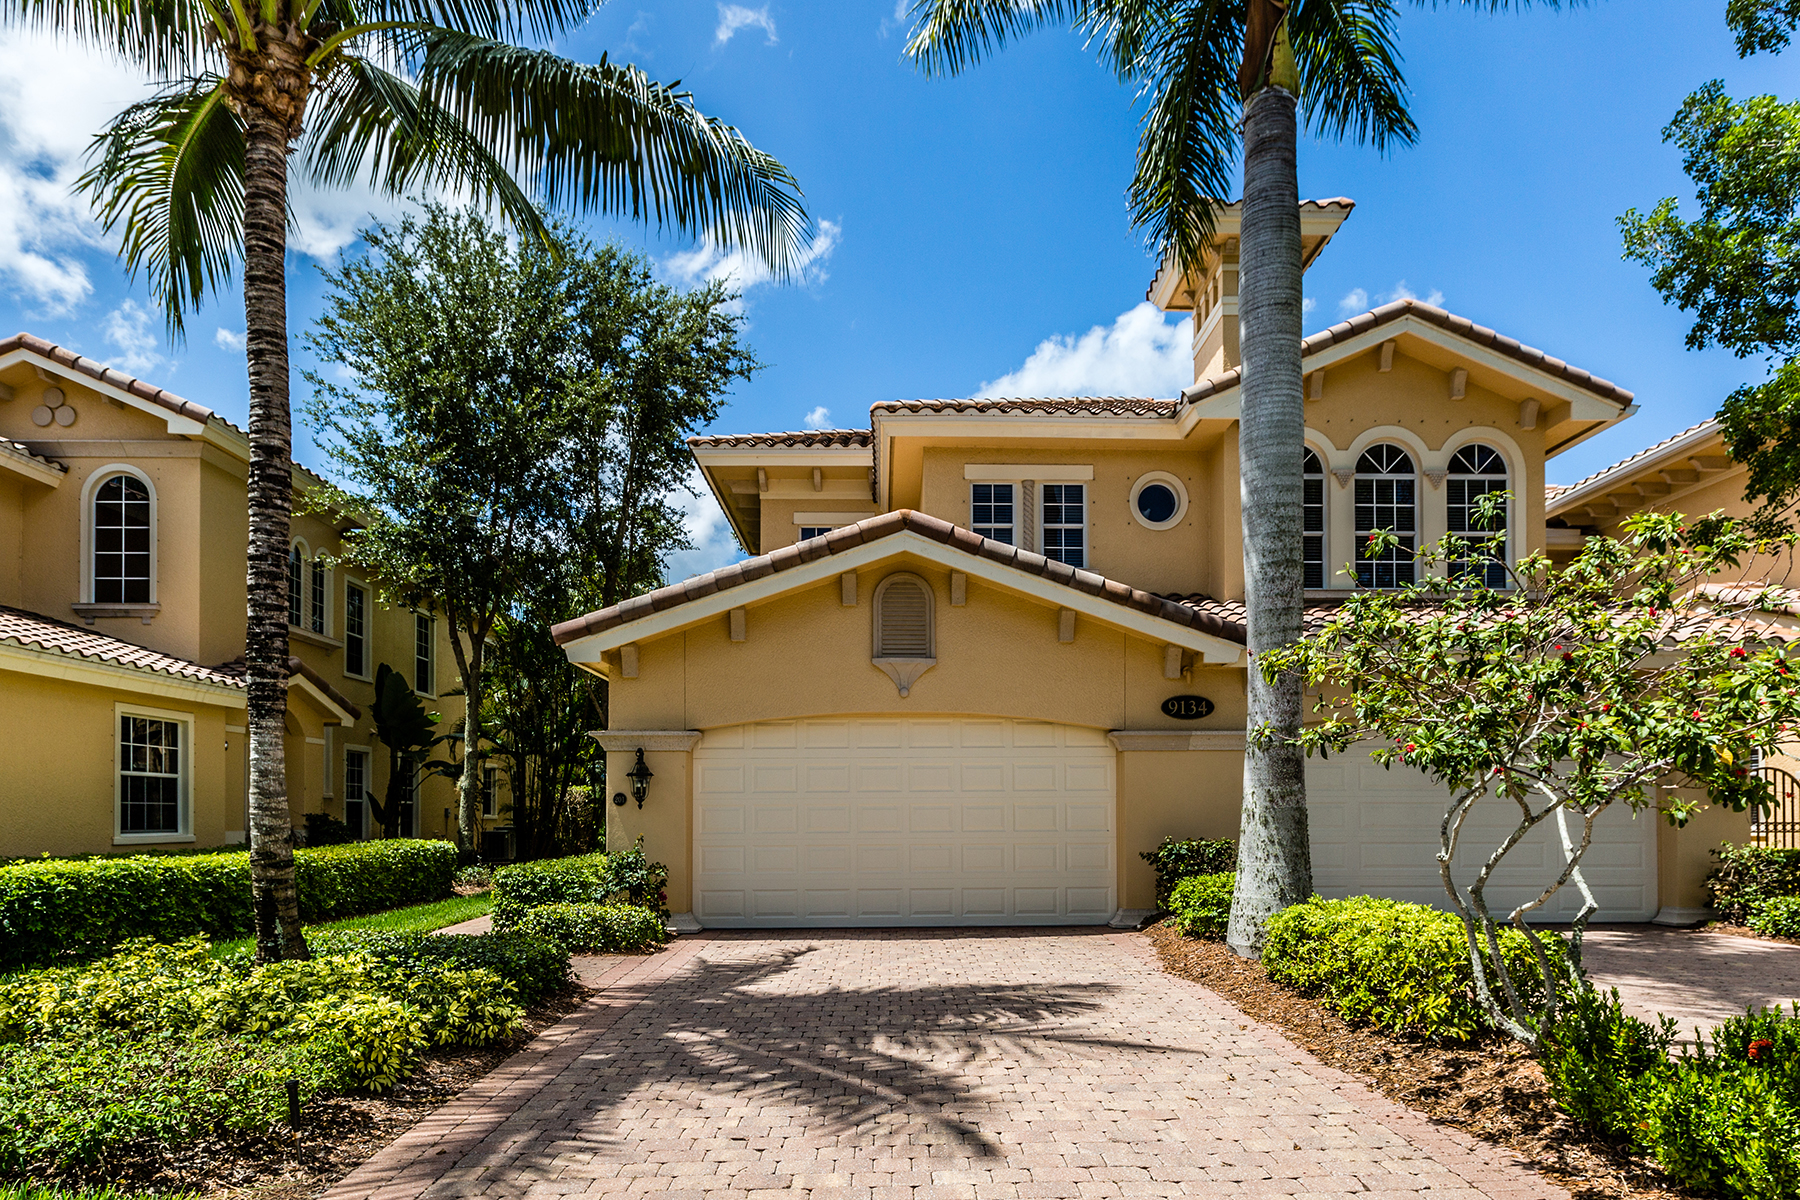 Piso por un Venta en FIDDLER'S CREEK - CHERRY OAKS 9134 Cherry Oaks Ln 201 Naples, Florida, 34114 Estados Unidos